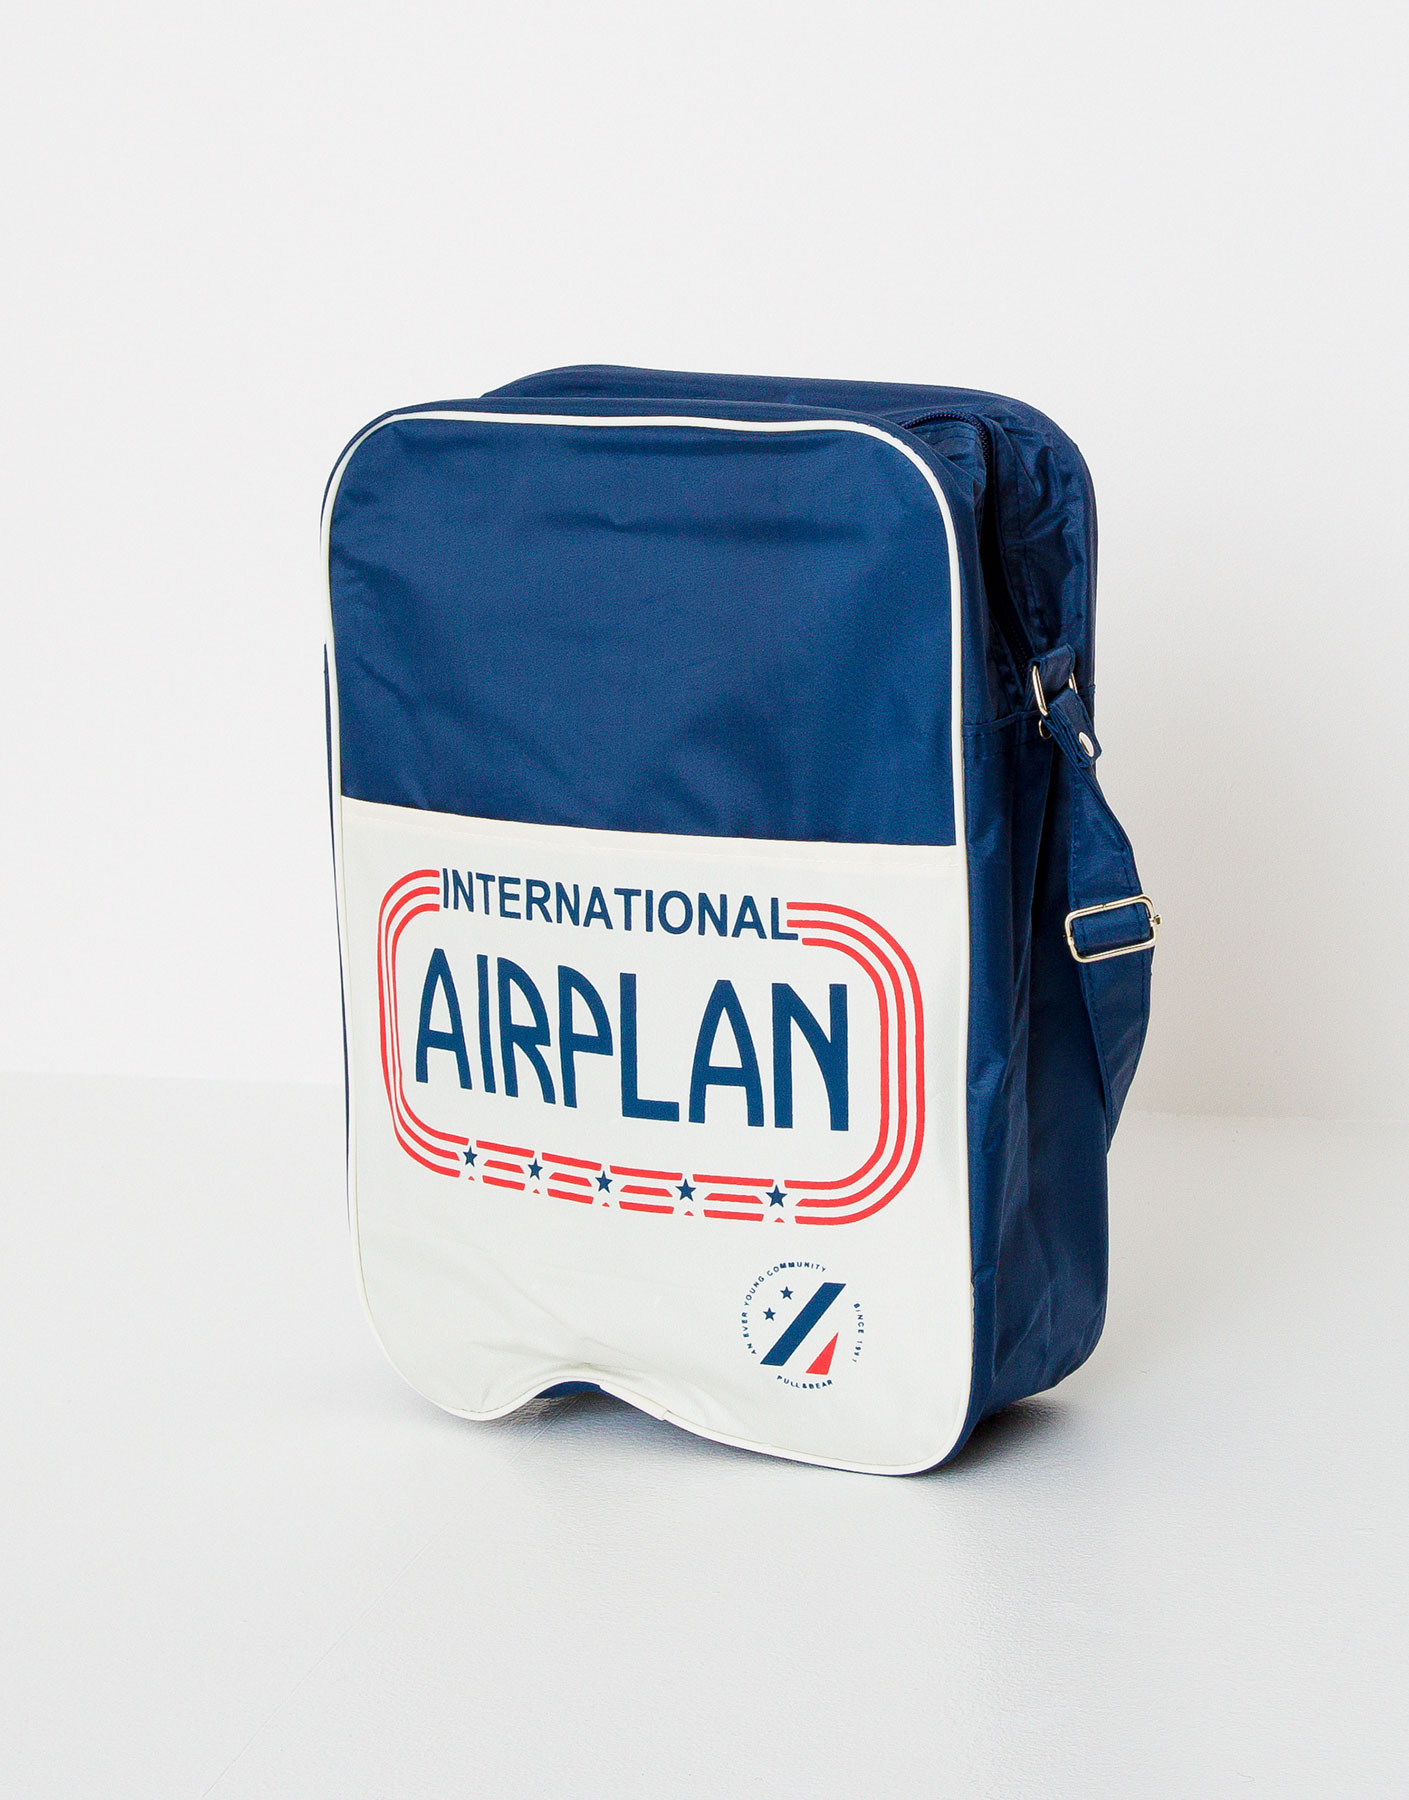 Airplan travel bag